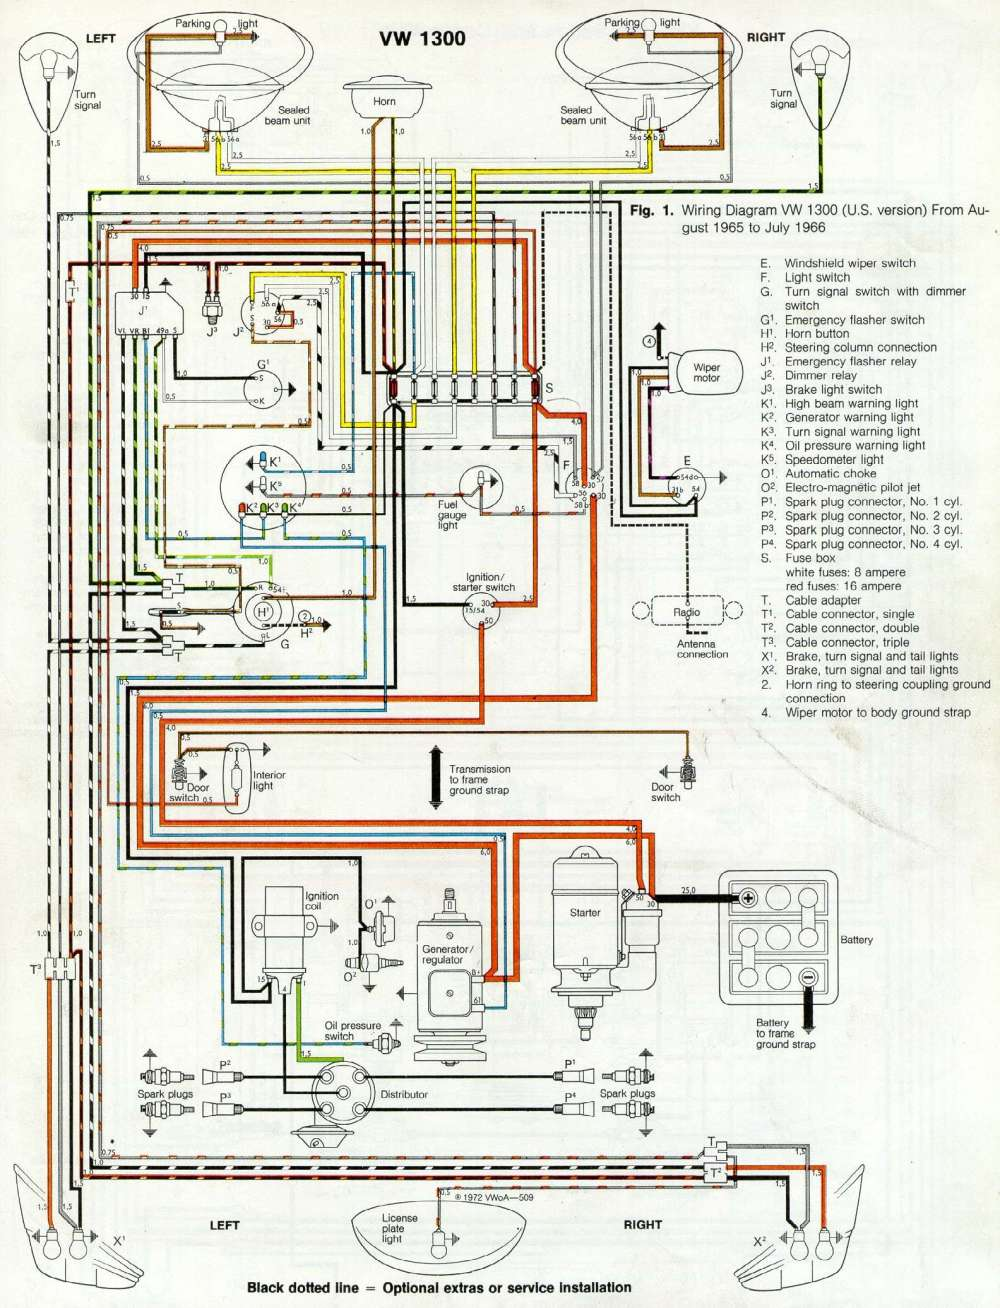 medium resolution of thesamba com type 1 wiring diagrams 2000 beetle fuse box diagram 1970 vw fuse box